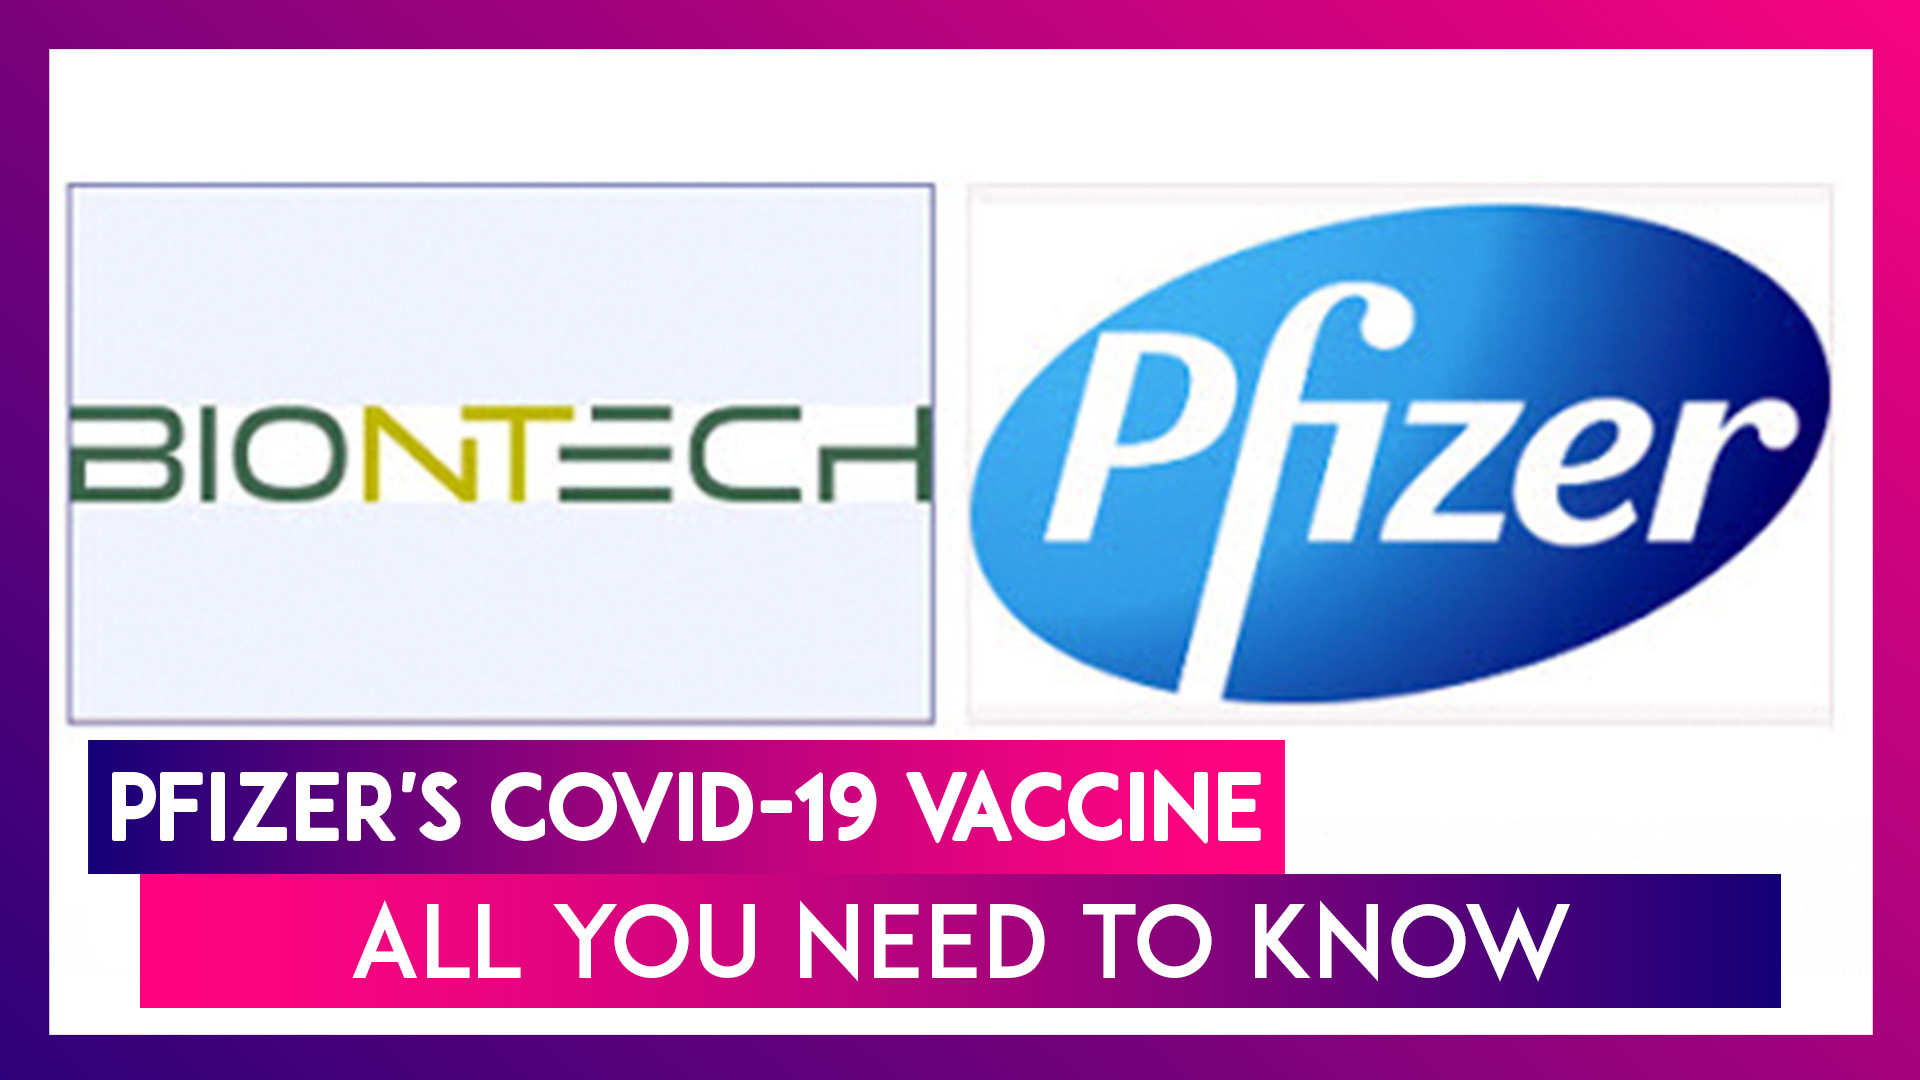 Pfizer Announces Its COVID-19 Vaccine Has A 90% Efficacy Rate: Things You Need To Know